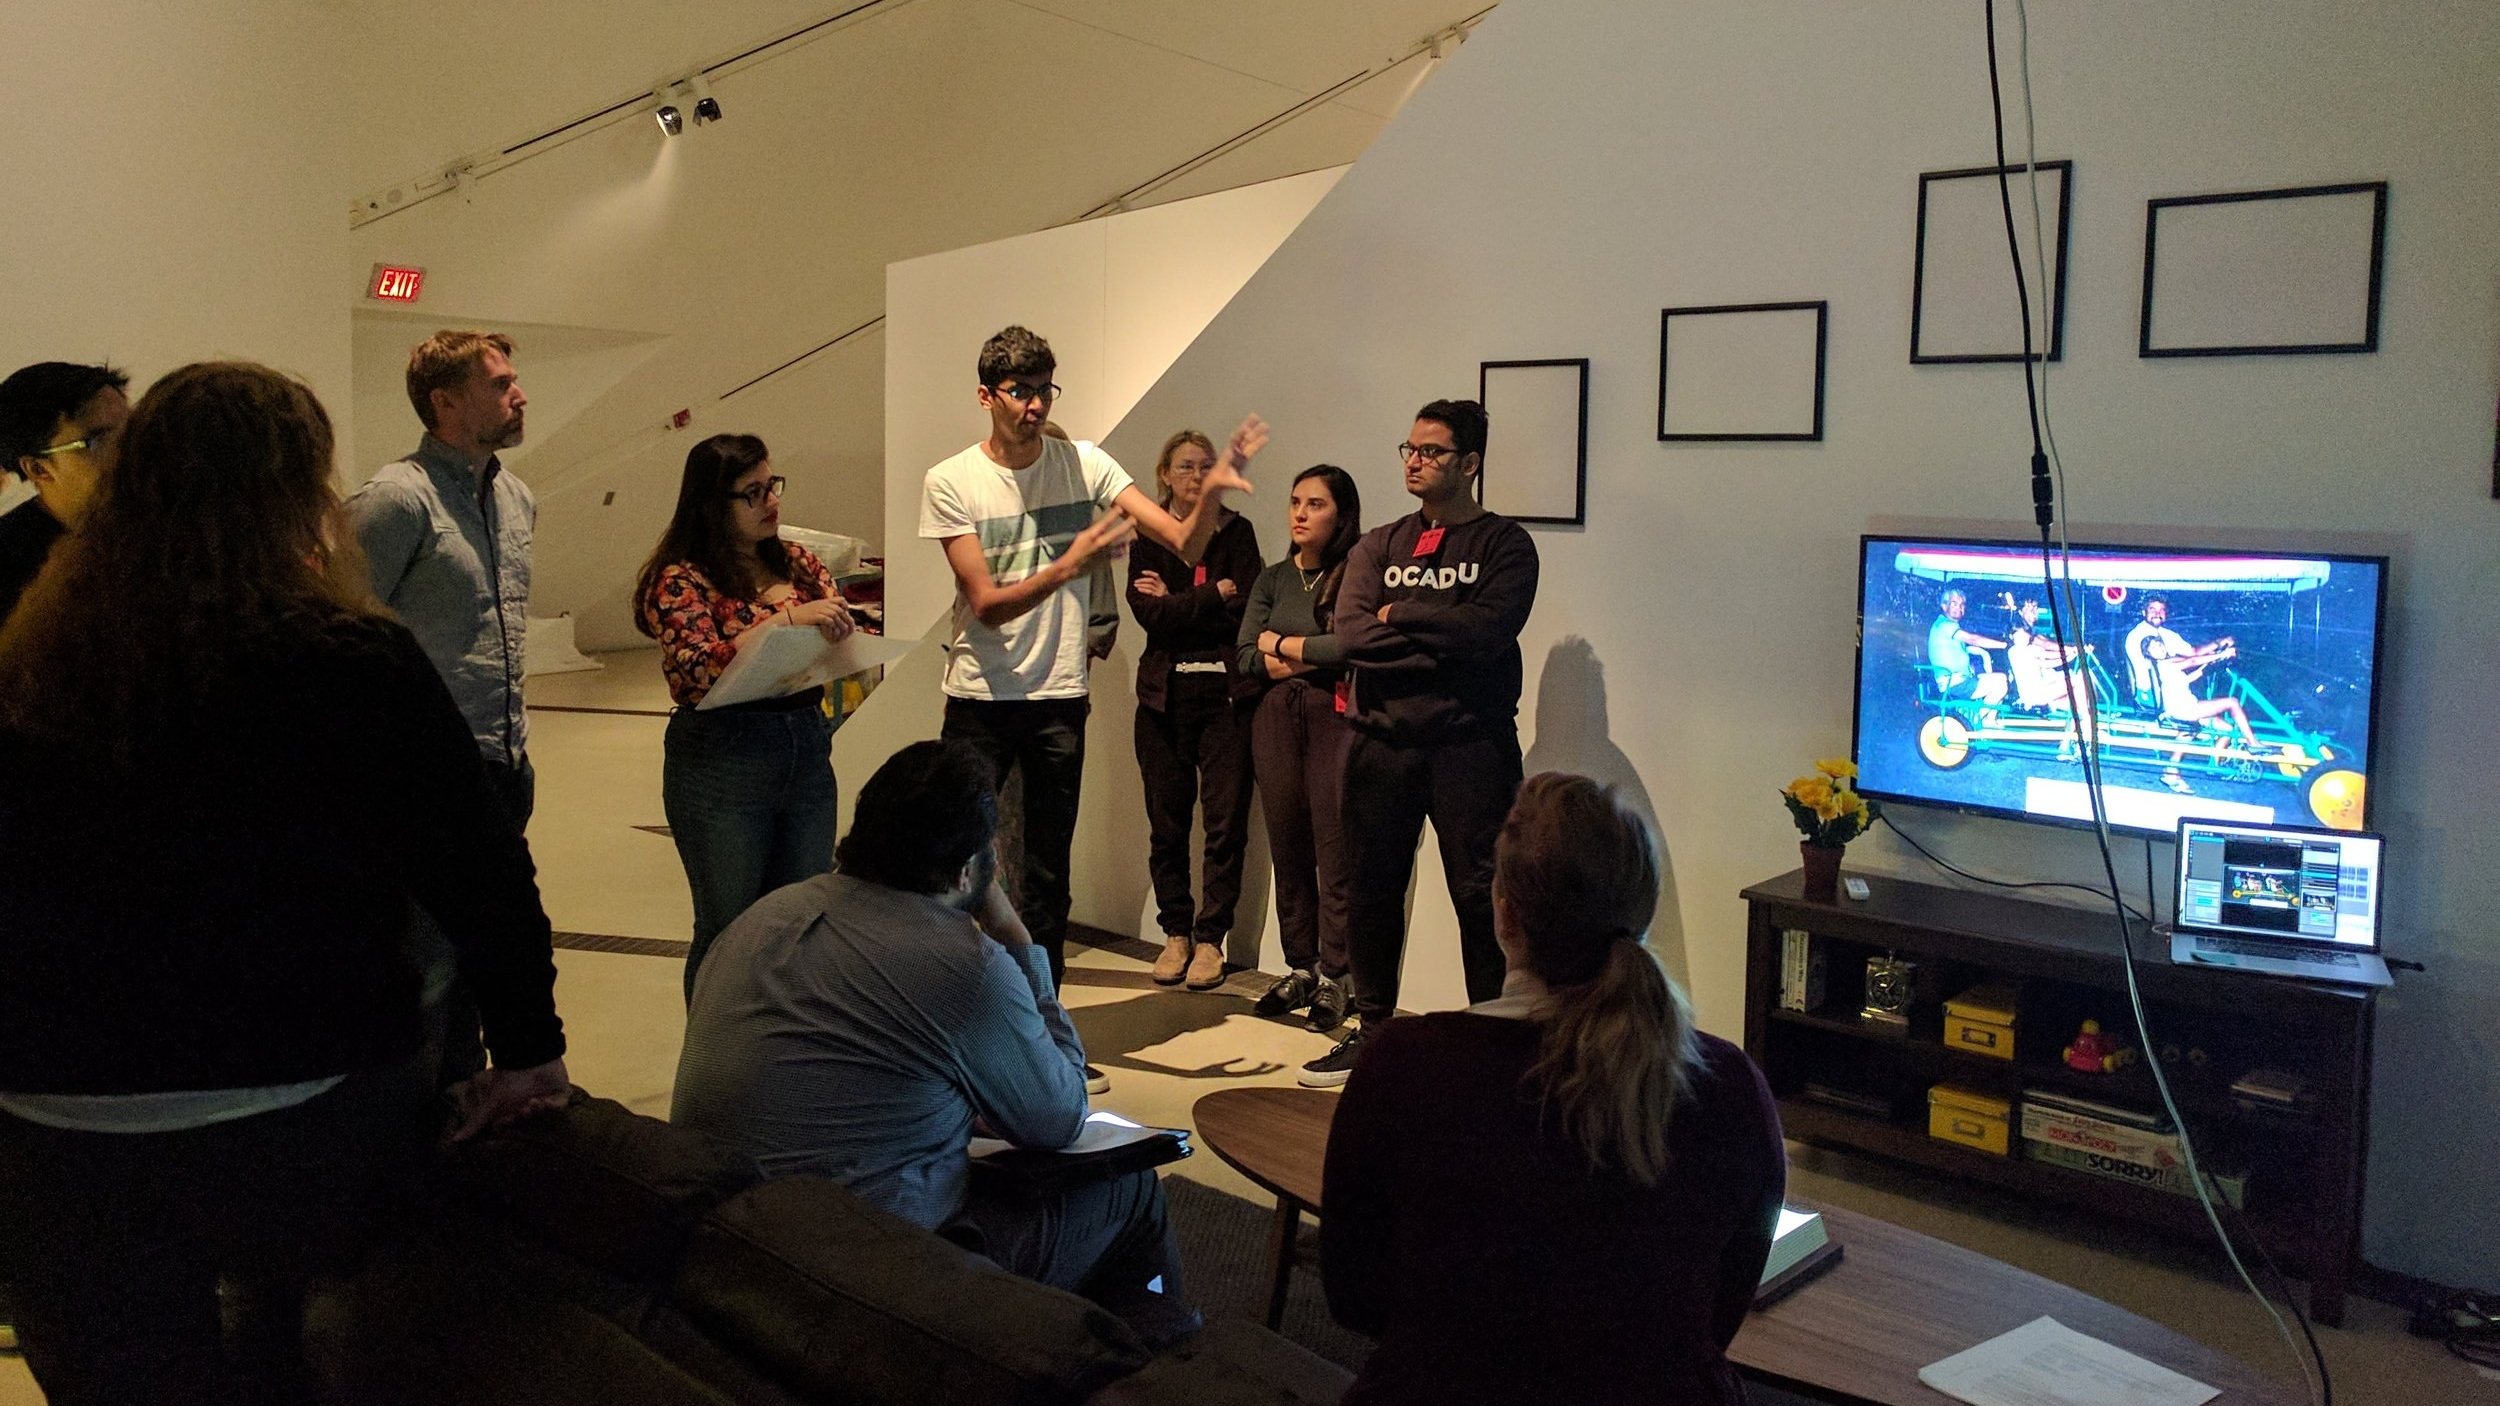 OCAdu students installing  the living room  for  the family camera  exhibition (j. Orpana, 2017)